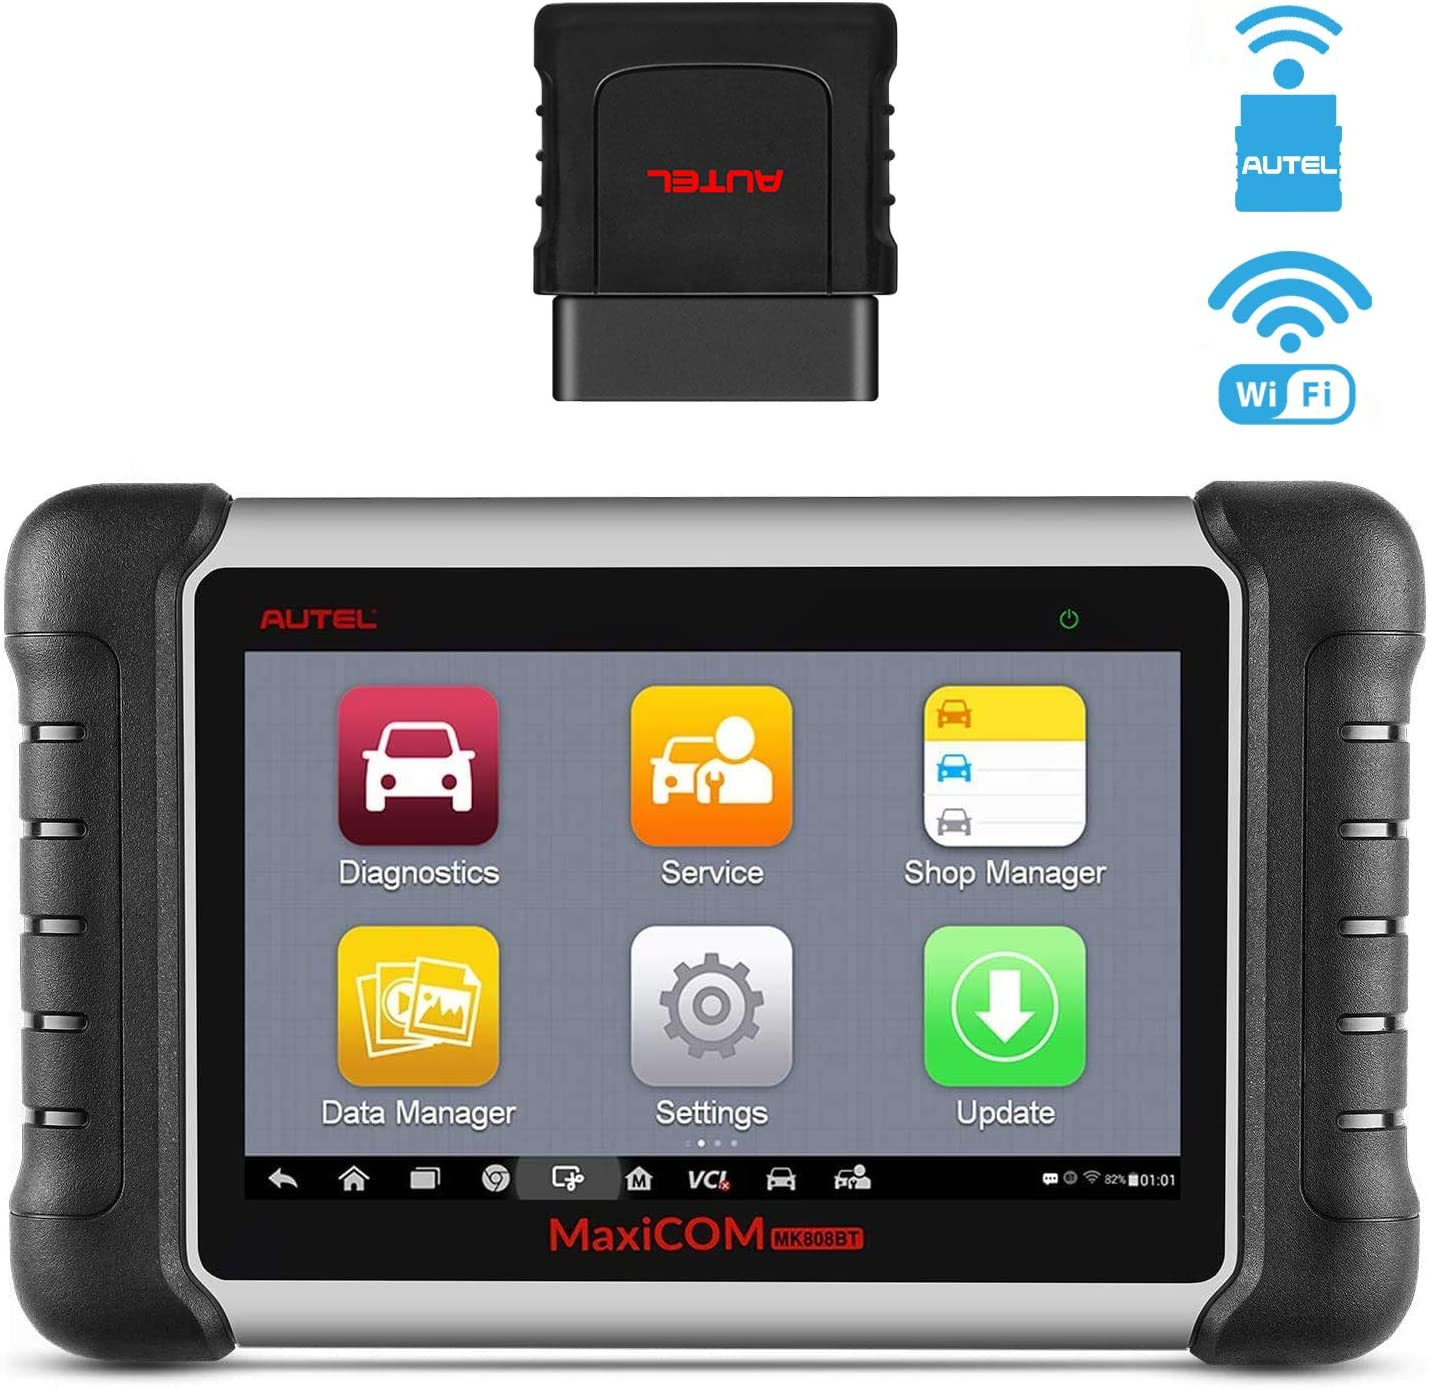 Autel MaxiCOM MK808BT Diagnostic Scan Tool with All System Diagnosis and 21 Services, Oil Reset, EPB, SAS, ABS Bleed, DPF, BMS, Injector Coding, Upgraded Ver. of MK808 (MaxiCheck Pro + MD808 Pro)